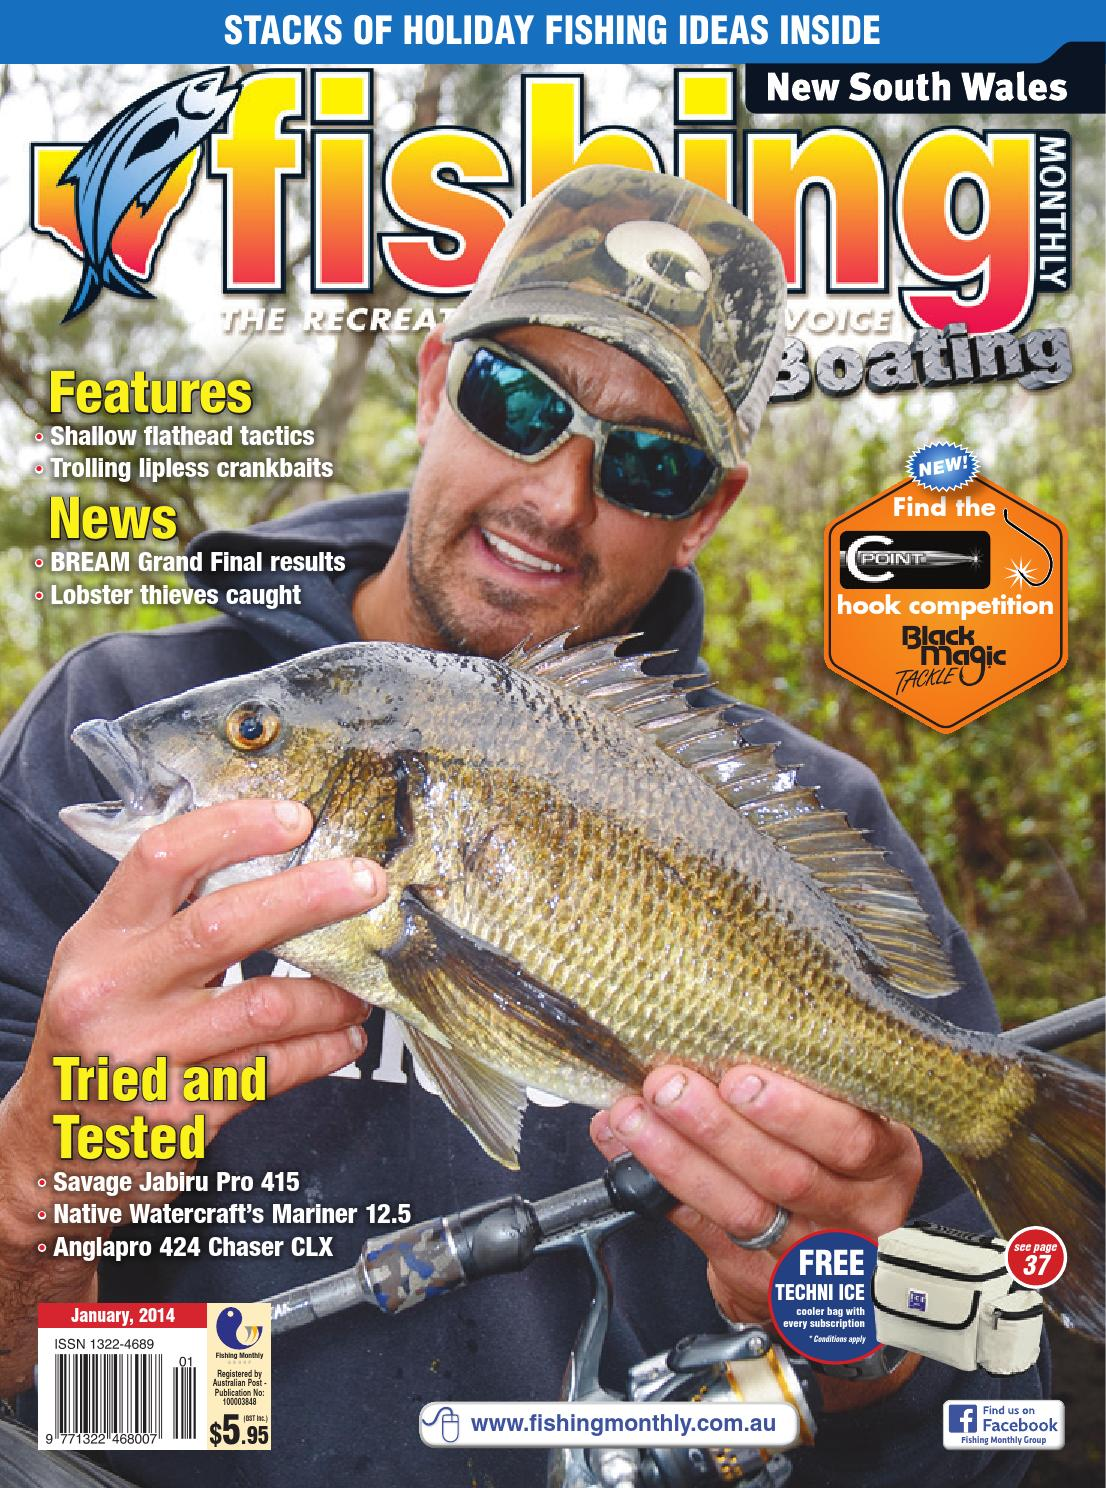 e6cc681e0c New South Wales Fishing Monthly - January 2014 by Fishing Monthly - issuu